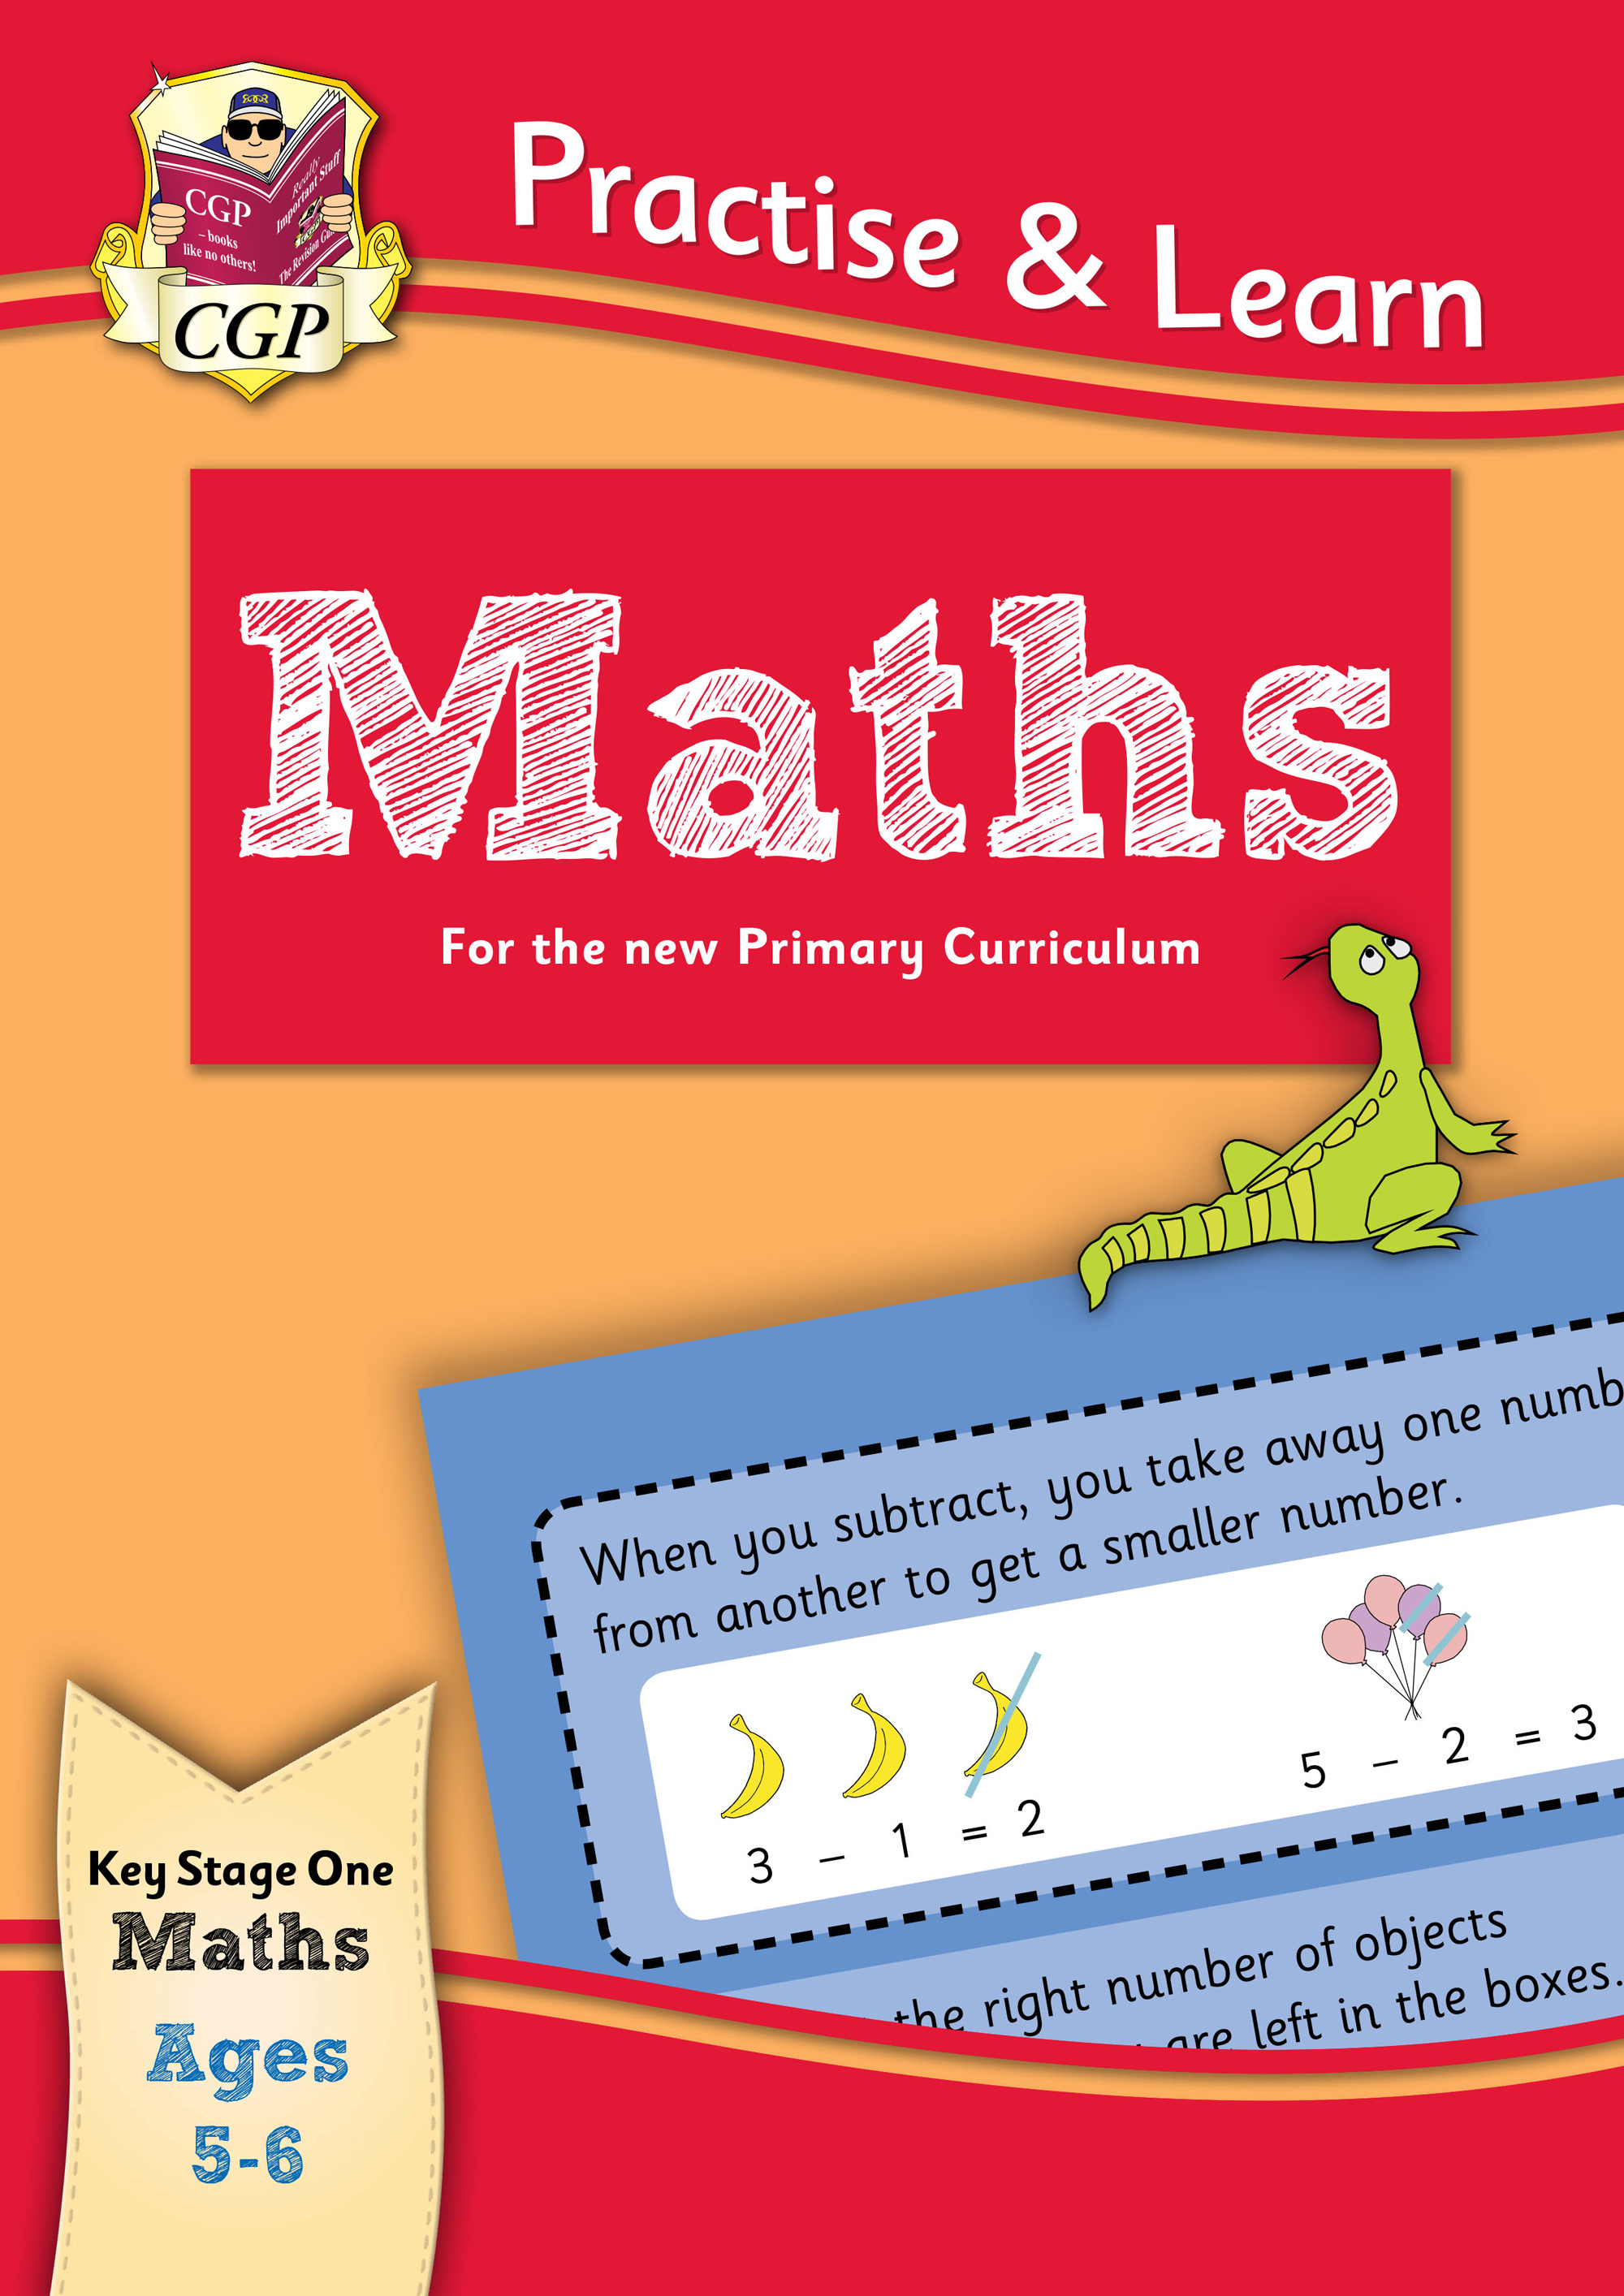 MP1Q12DK - New Curriculum Practise & Learn: Maths for Ages 5-6